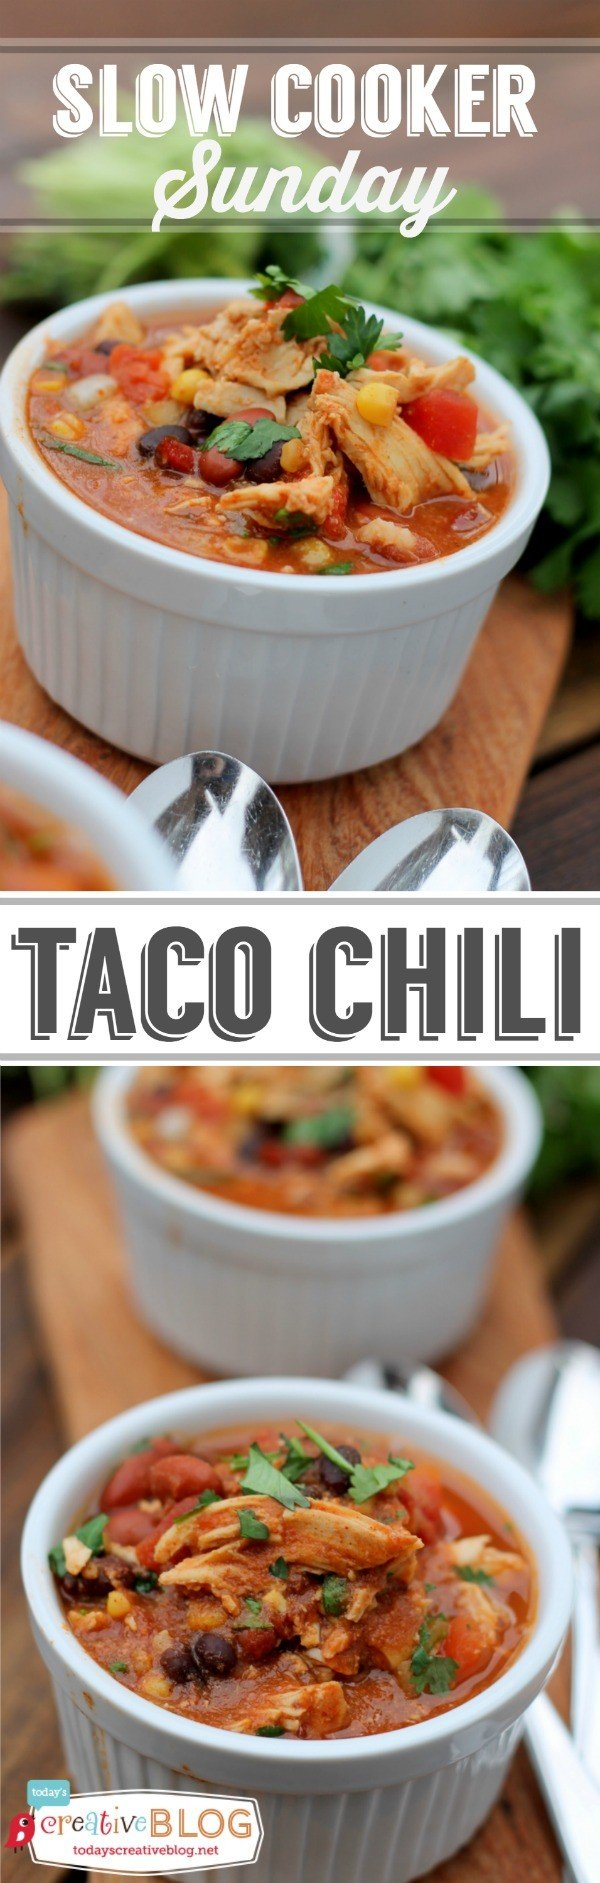 Slow Cooker Taco Chili Recipe collage